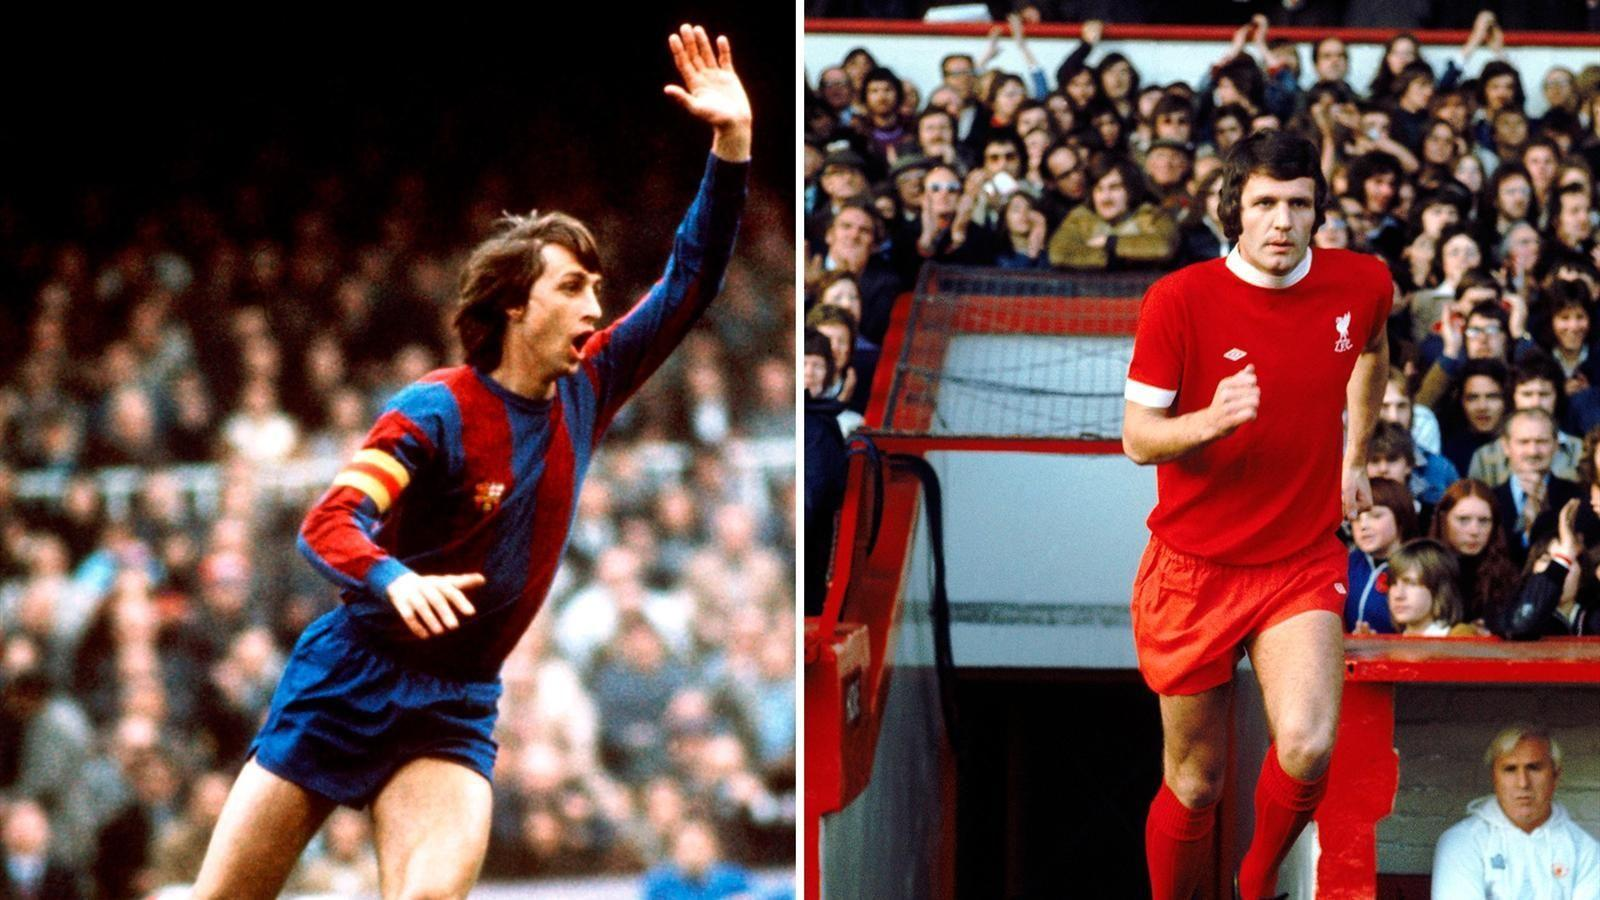 Johan Cruyff and Liverpool: The unlikely catalysts for the other's